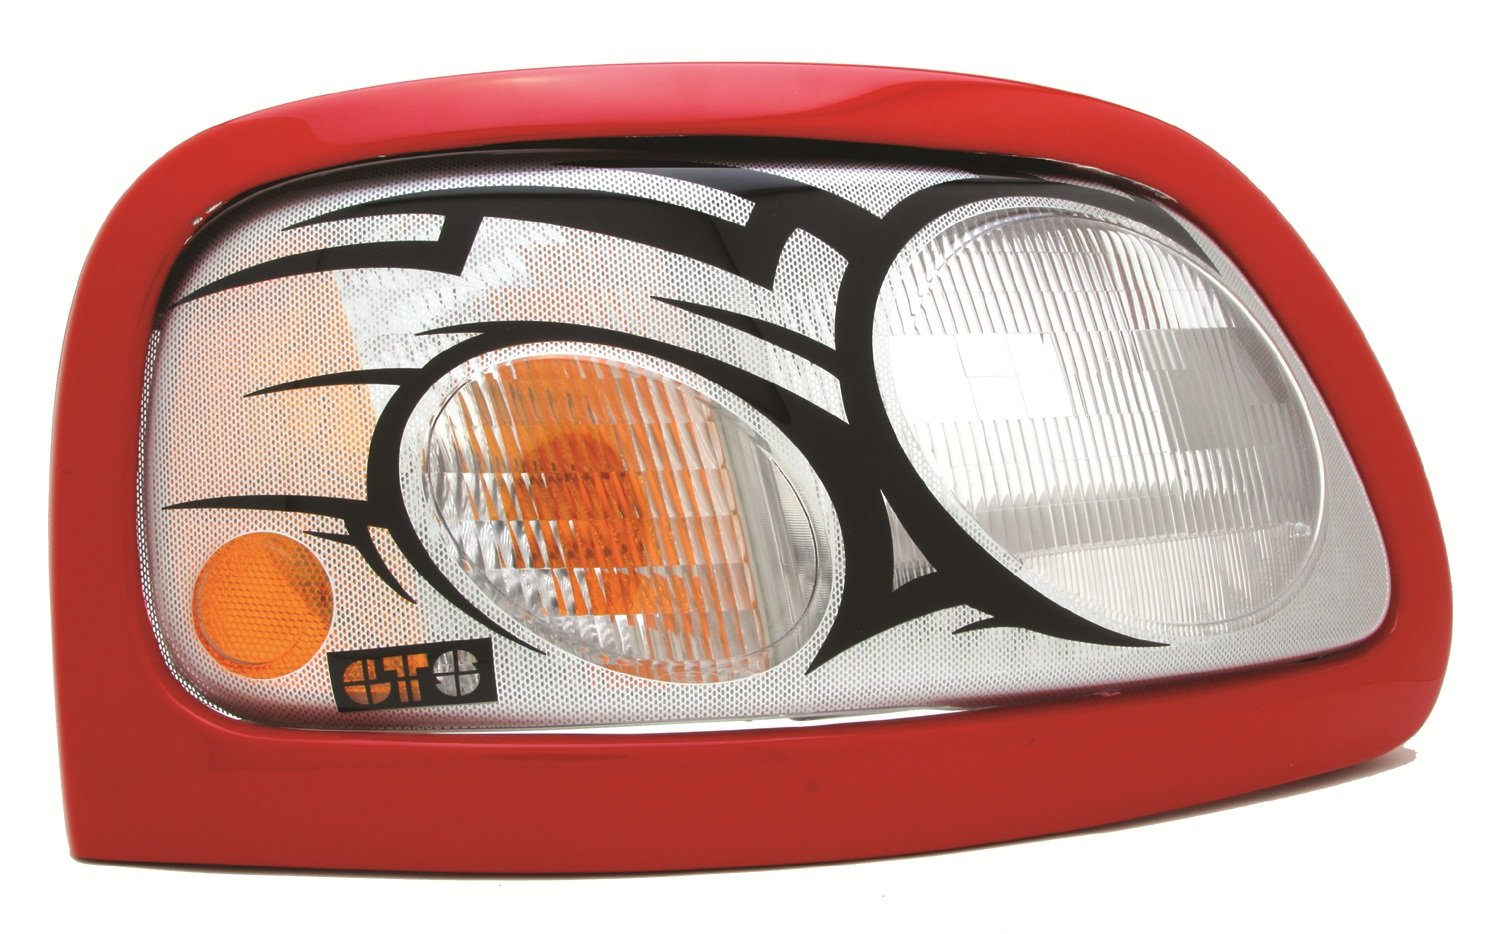 GT Styling 967137 Pro-Beam Headlight Cover Tribal Pro-Beam Headlight Cover